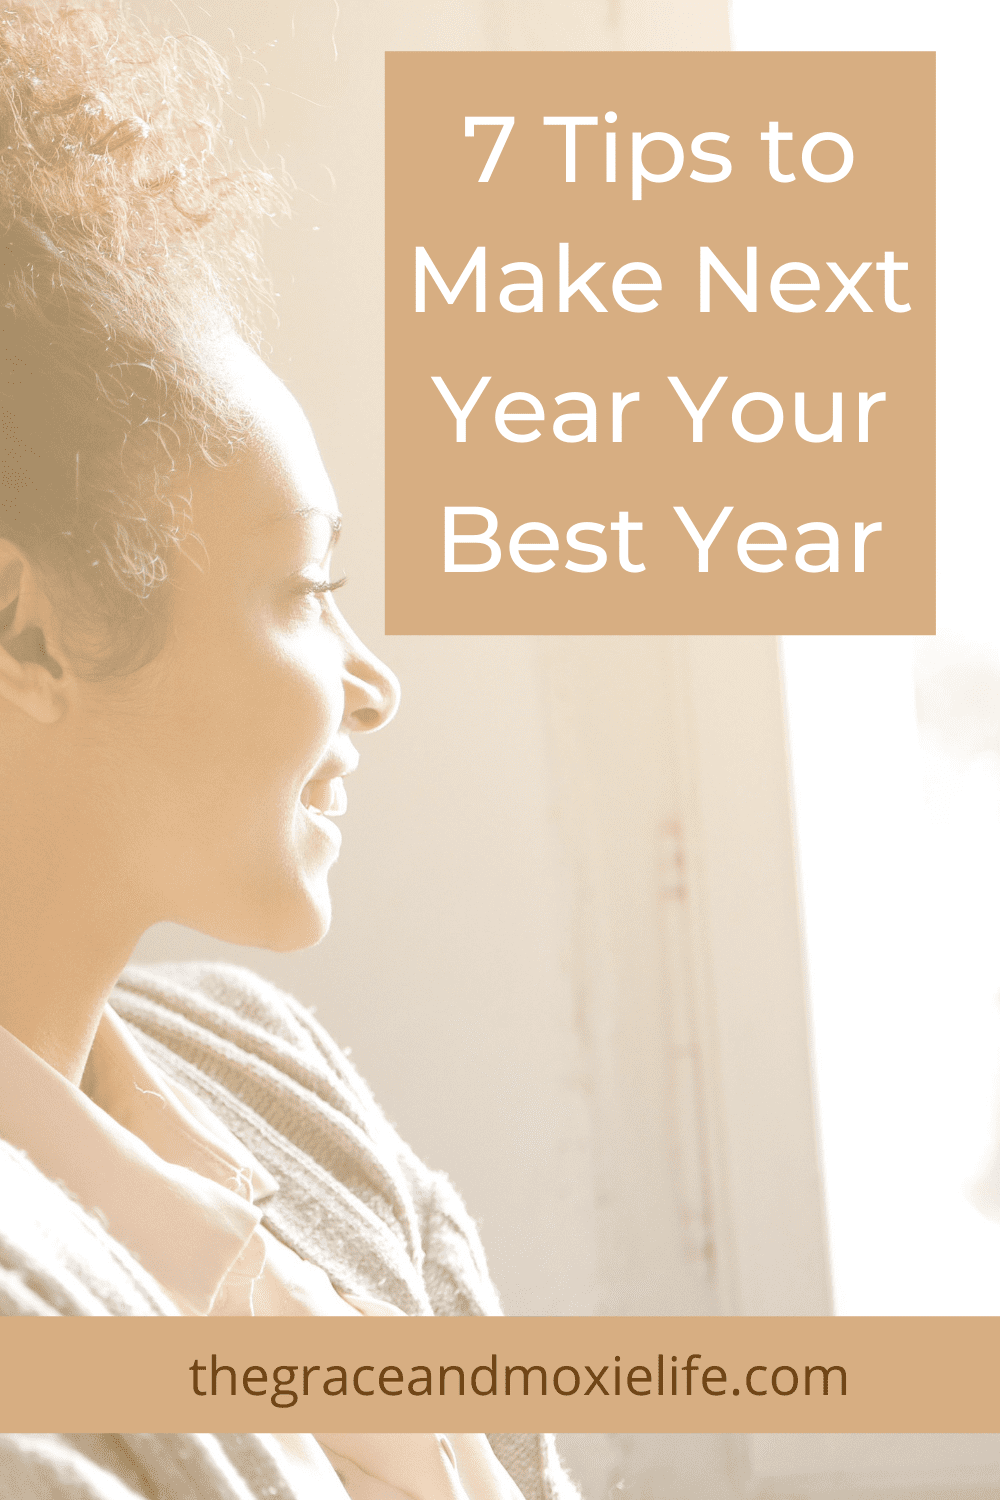 7 Tips to Make Next Year Your Best Year | The Grace and Moxie Life